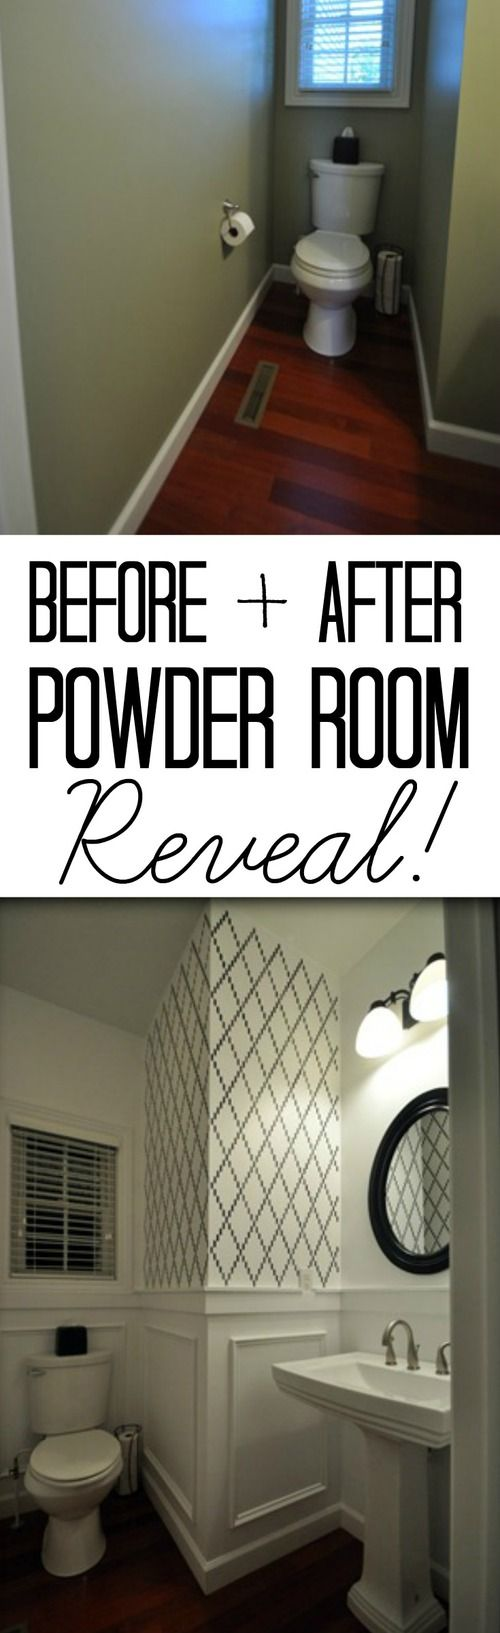 Powder Room Reveal! Love the stenciled wall!